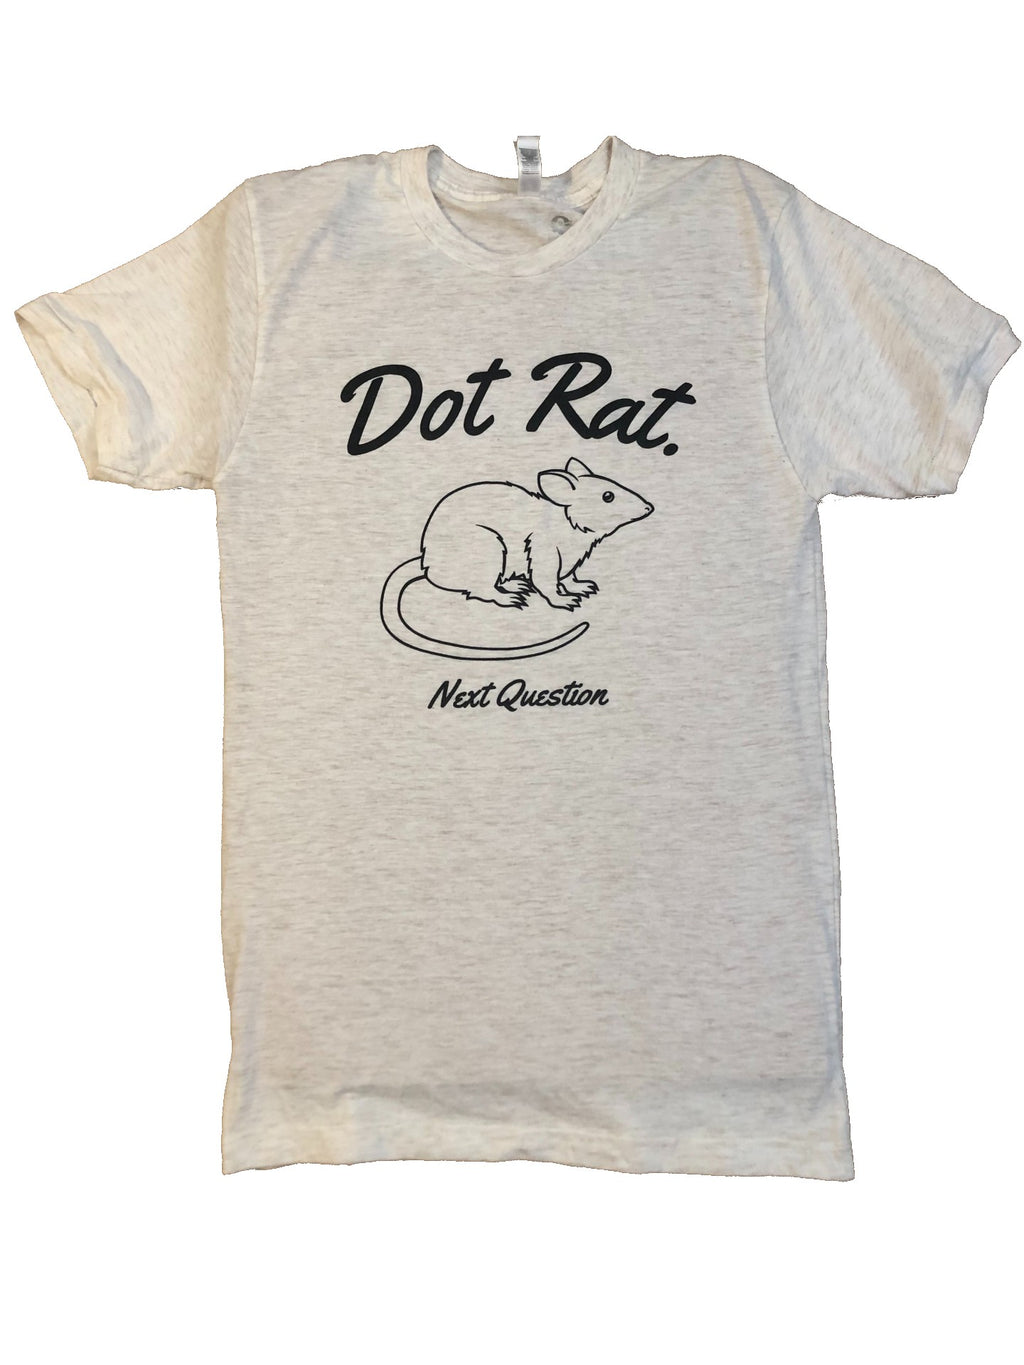 Dot Rat. T-shirt